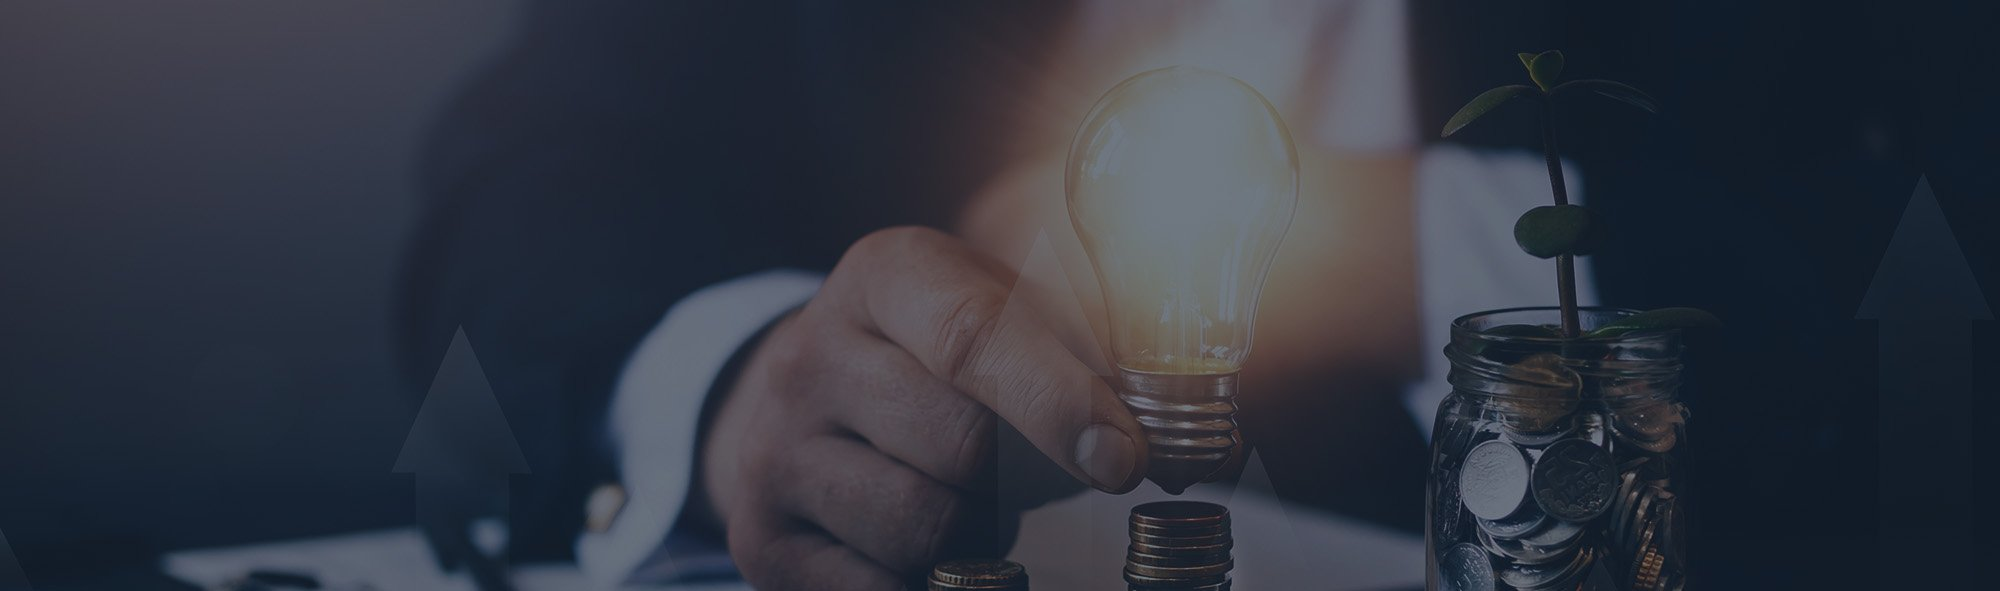 How to turn a great idea into a successful business – Part 1